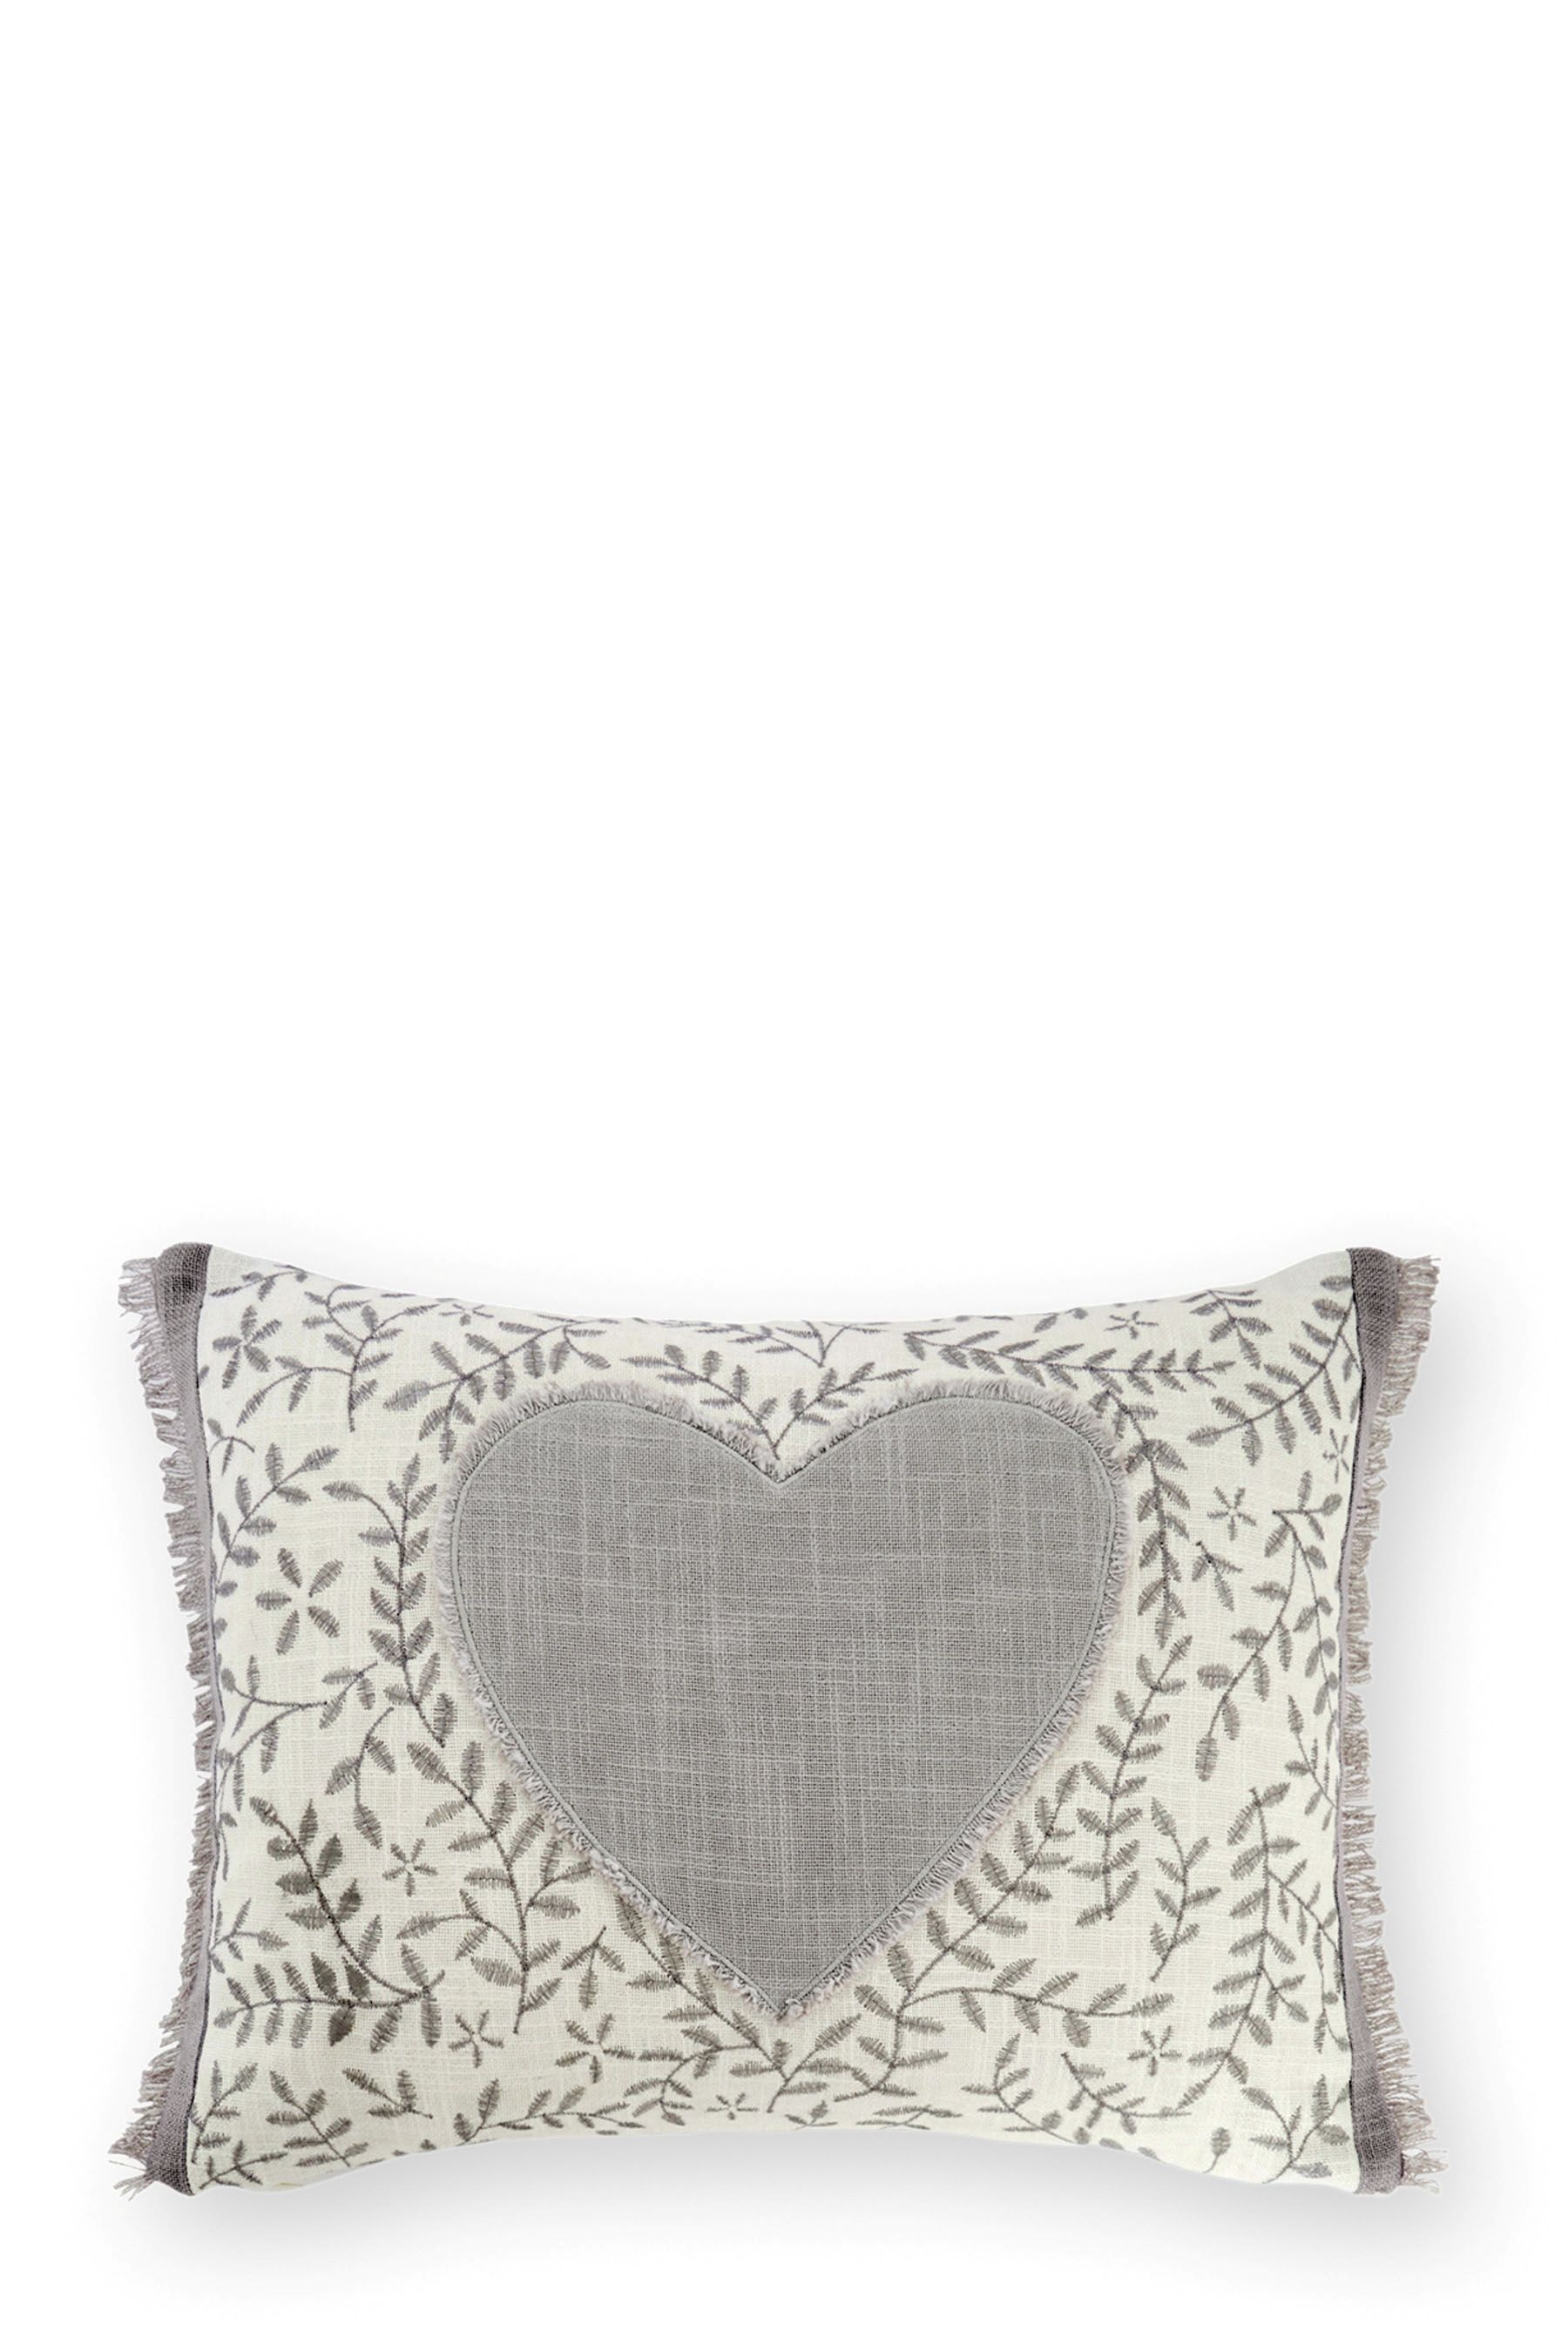 Buy Appliqué Heart Embroidered Cushion from the Next UK